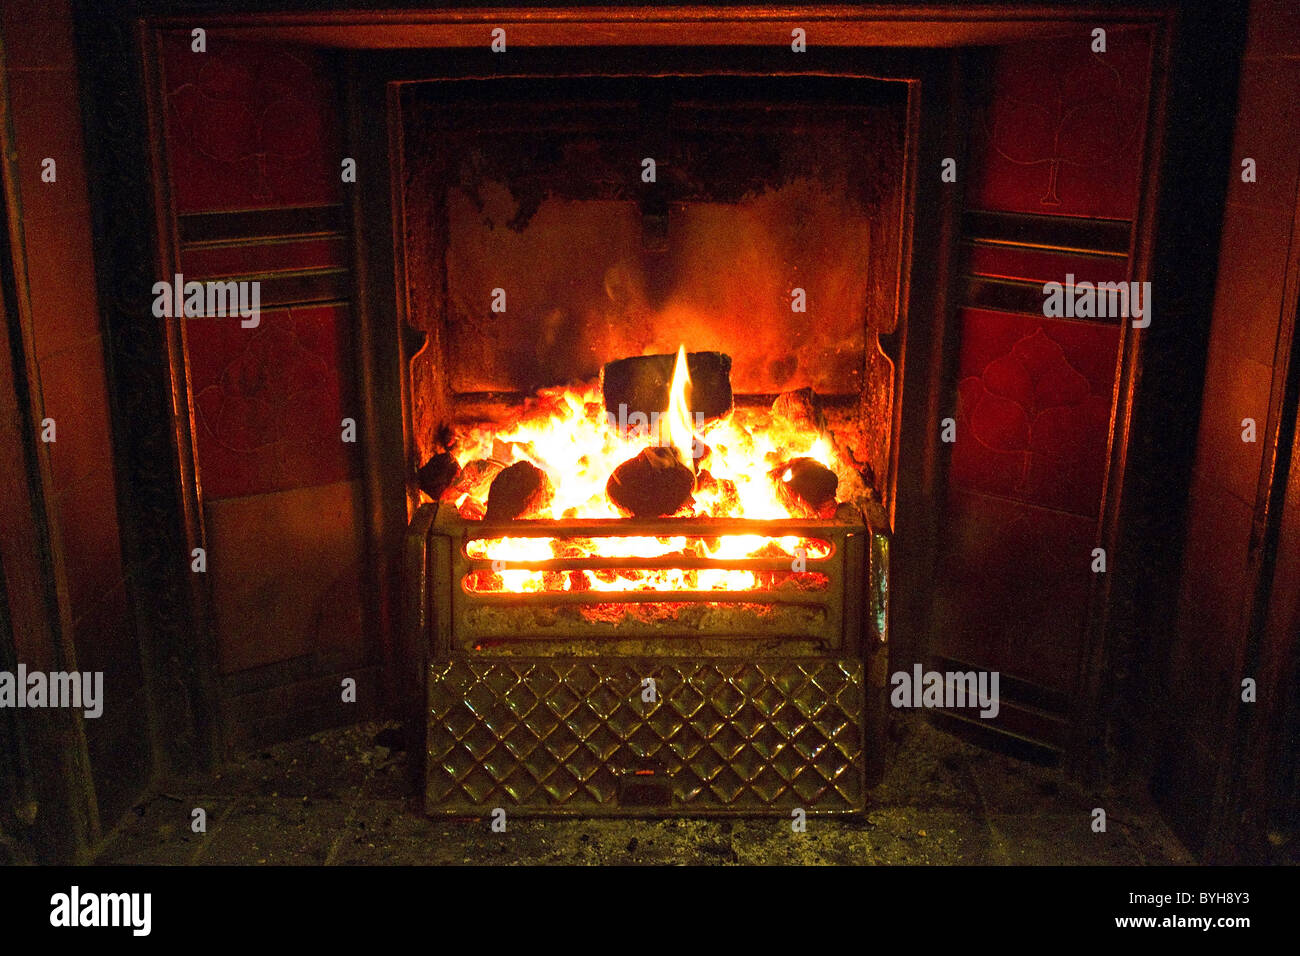 A Roaring Coal Fire In A Traditional Fireplace Stock Photo 34186295